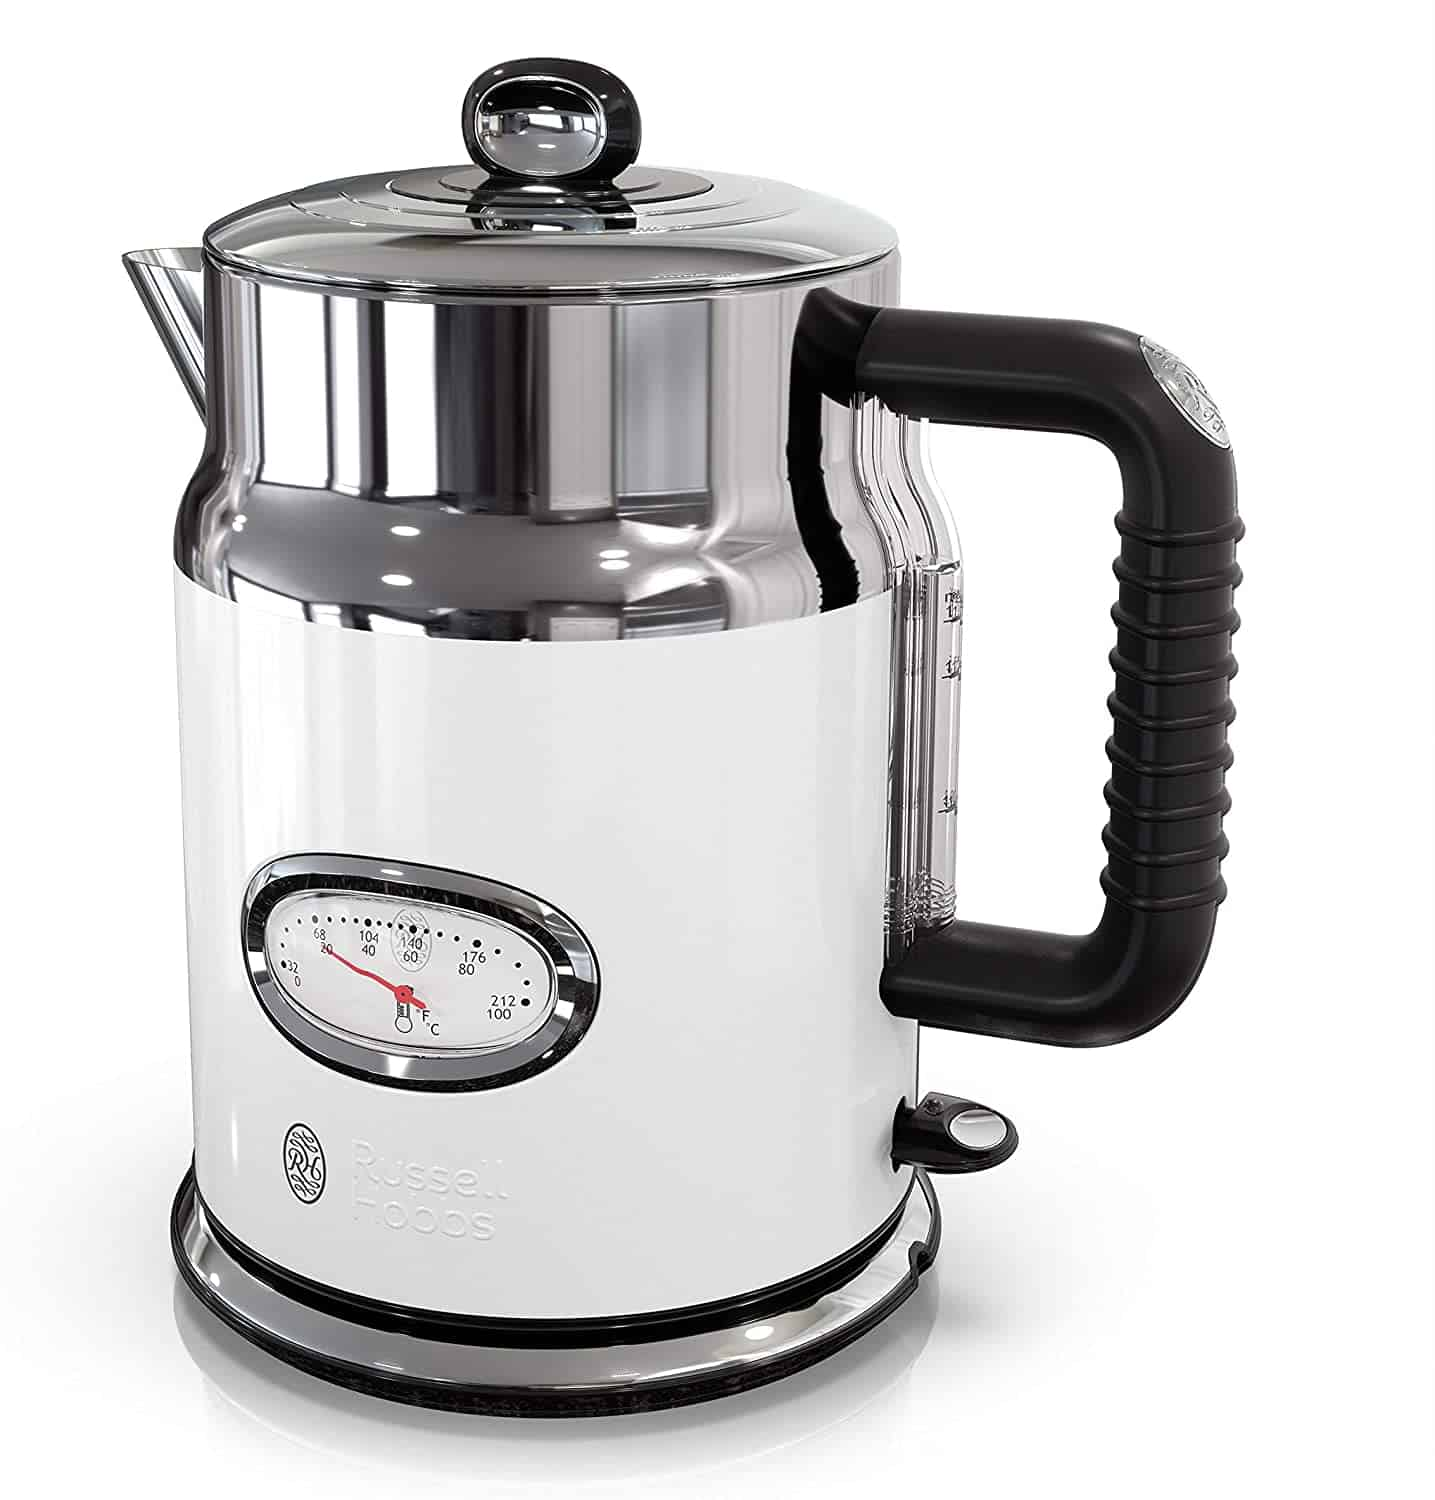 Remington Russell 1.7-Liter Kettle